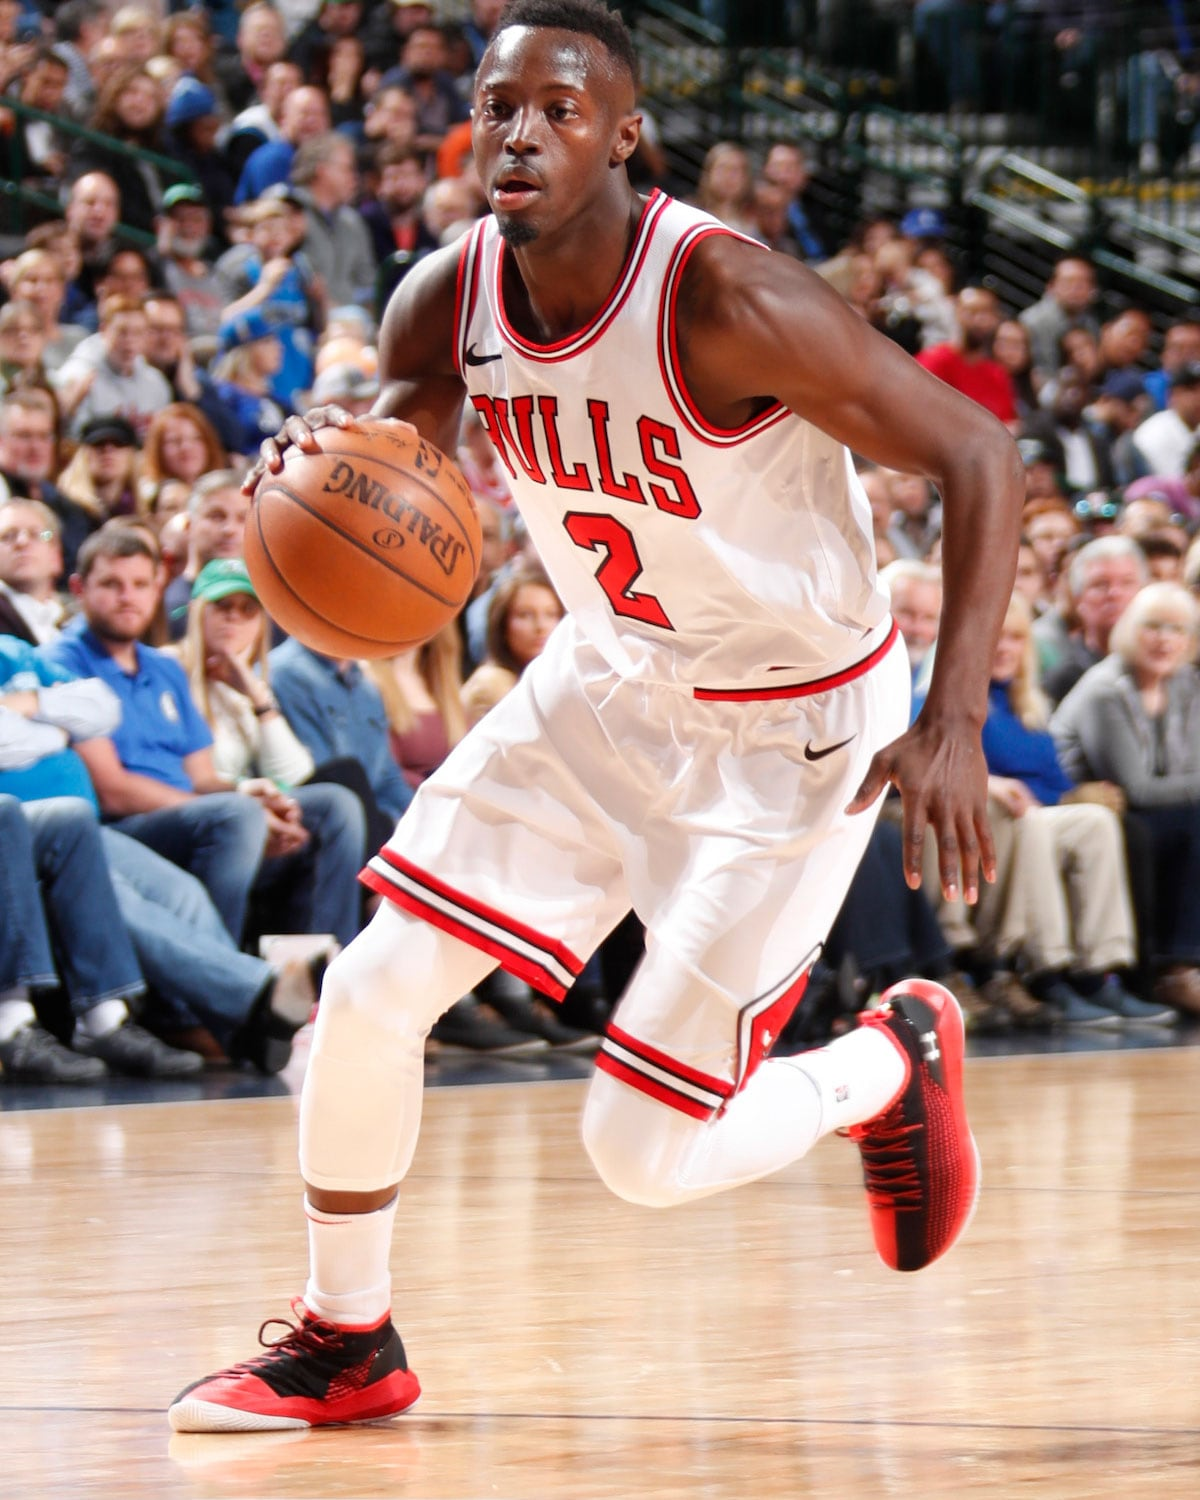 Jerian Grant dribbles the ball.